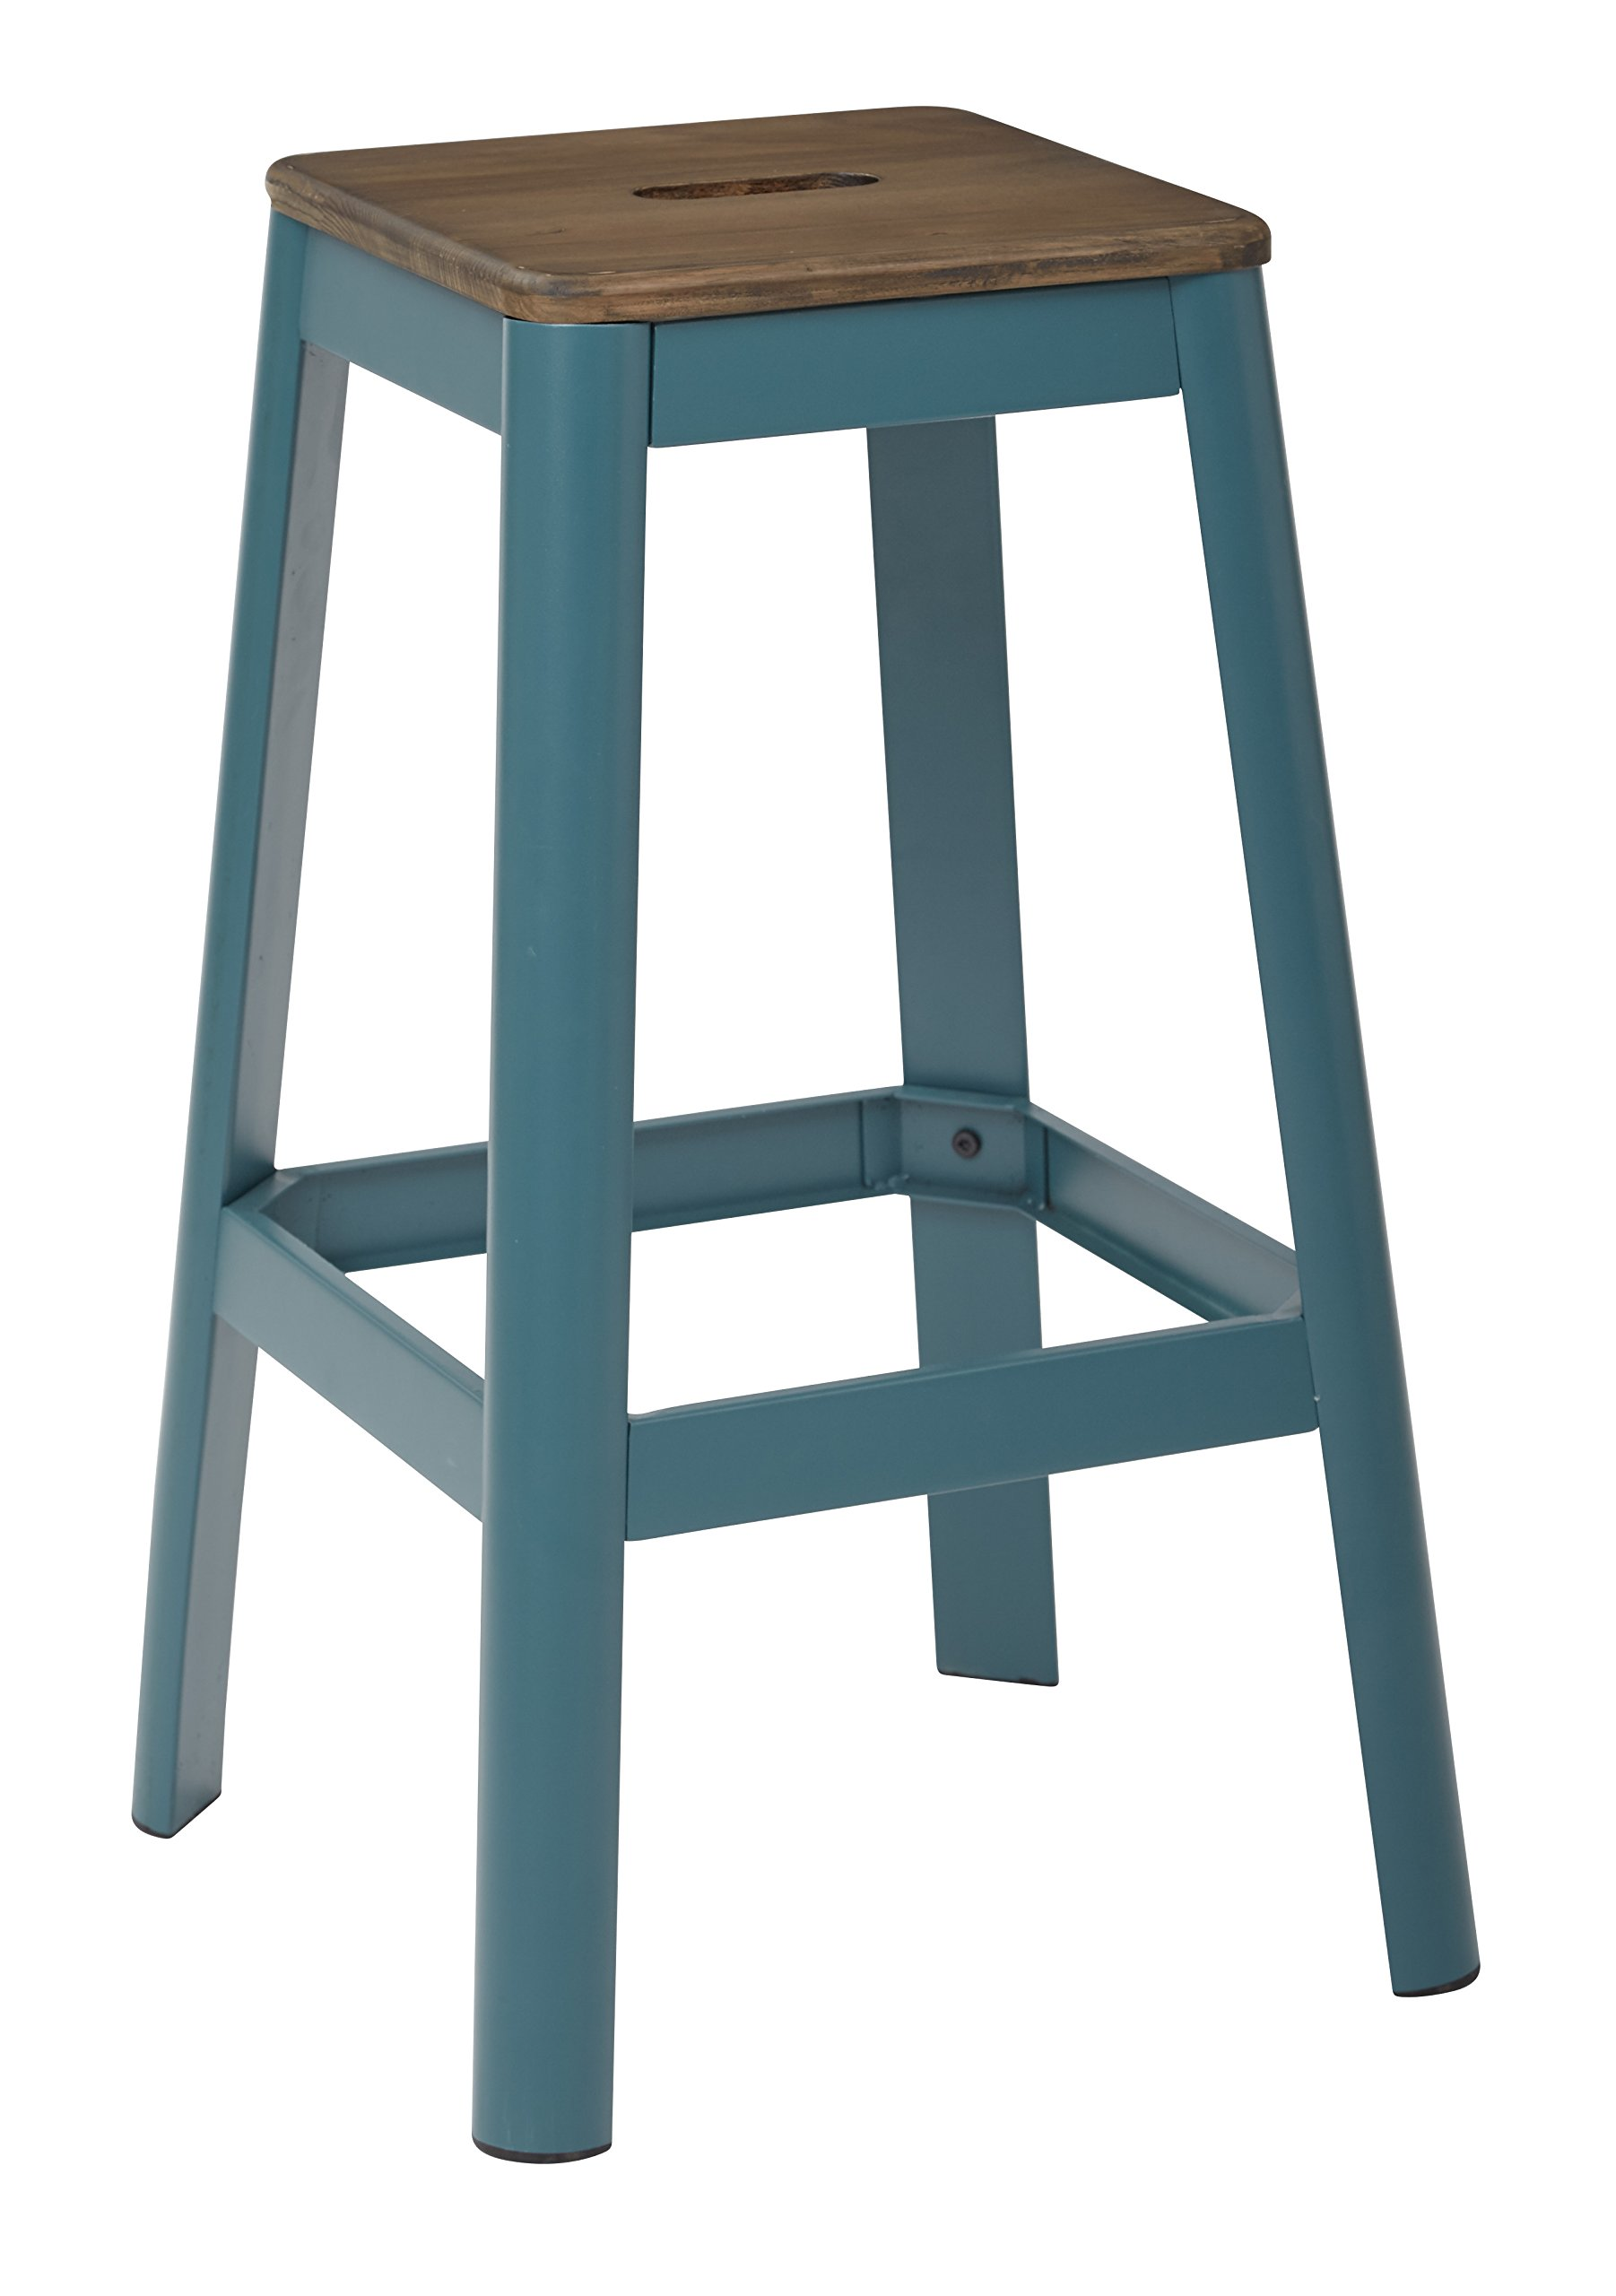 Work Smart/OSP Designs HMM9430D-C236-osp Hammond 30'' Metal Barstool with Dark Wood Seat and Frame, Frosted Teal